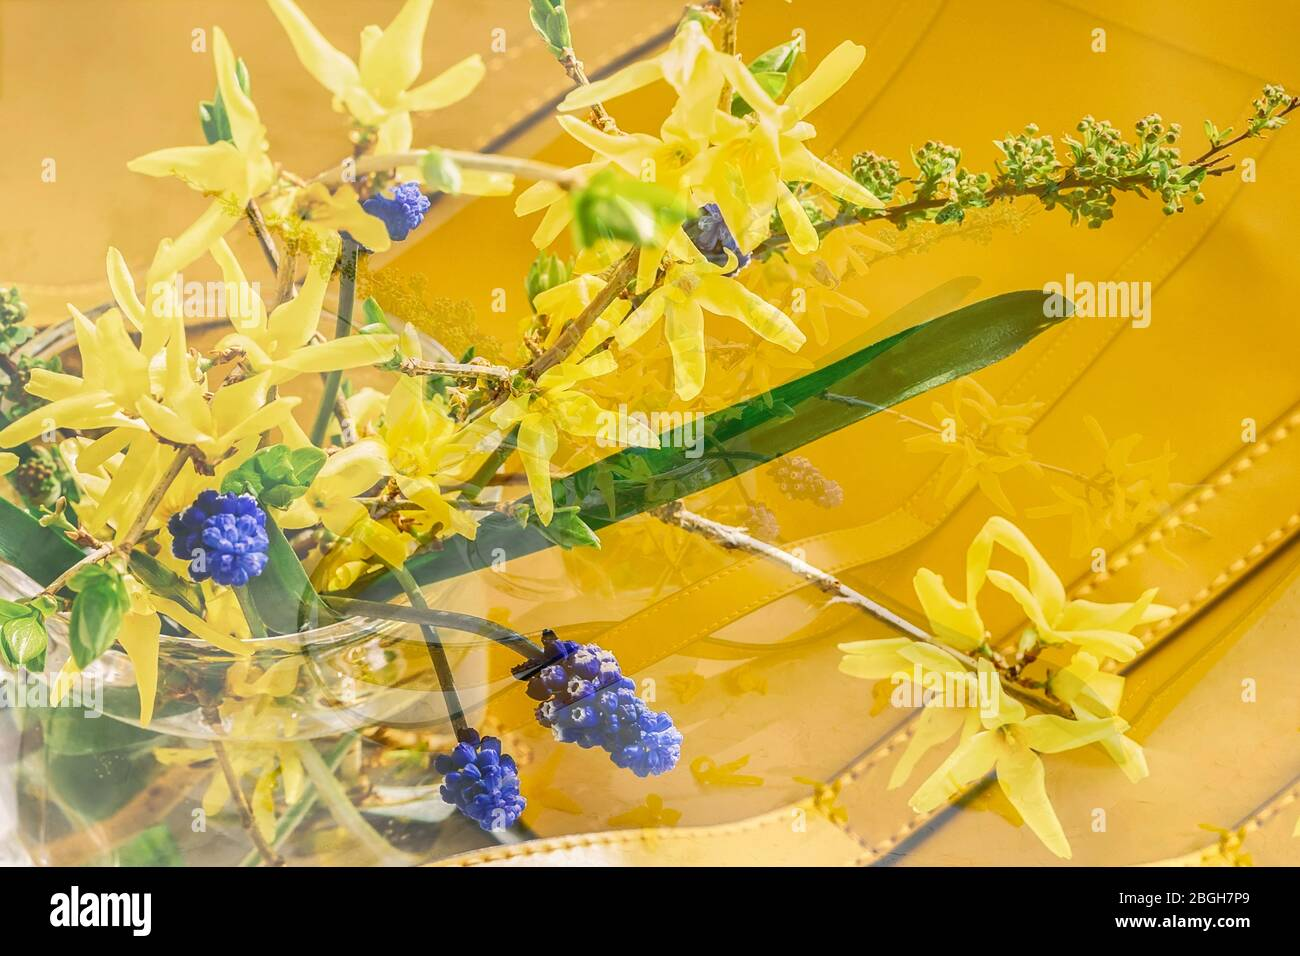 Blurred floral background, double exposure, yellow handbag and bouquet of colorful flowers, top view, selective focus. Concept of spring or summer Stock Photo